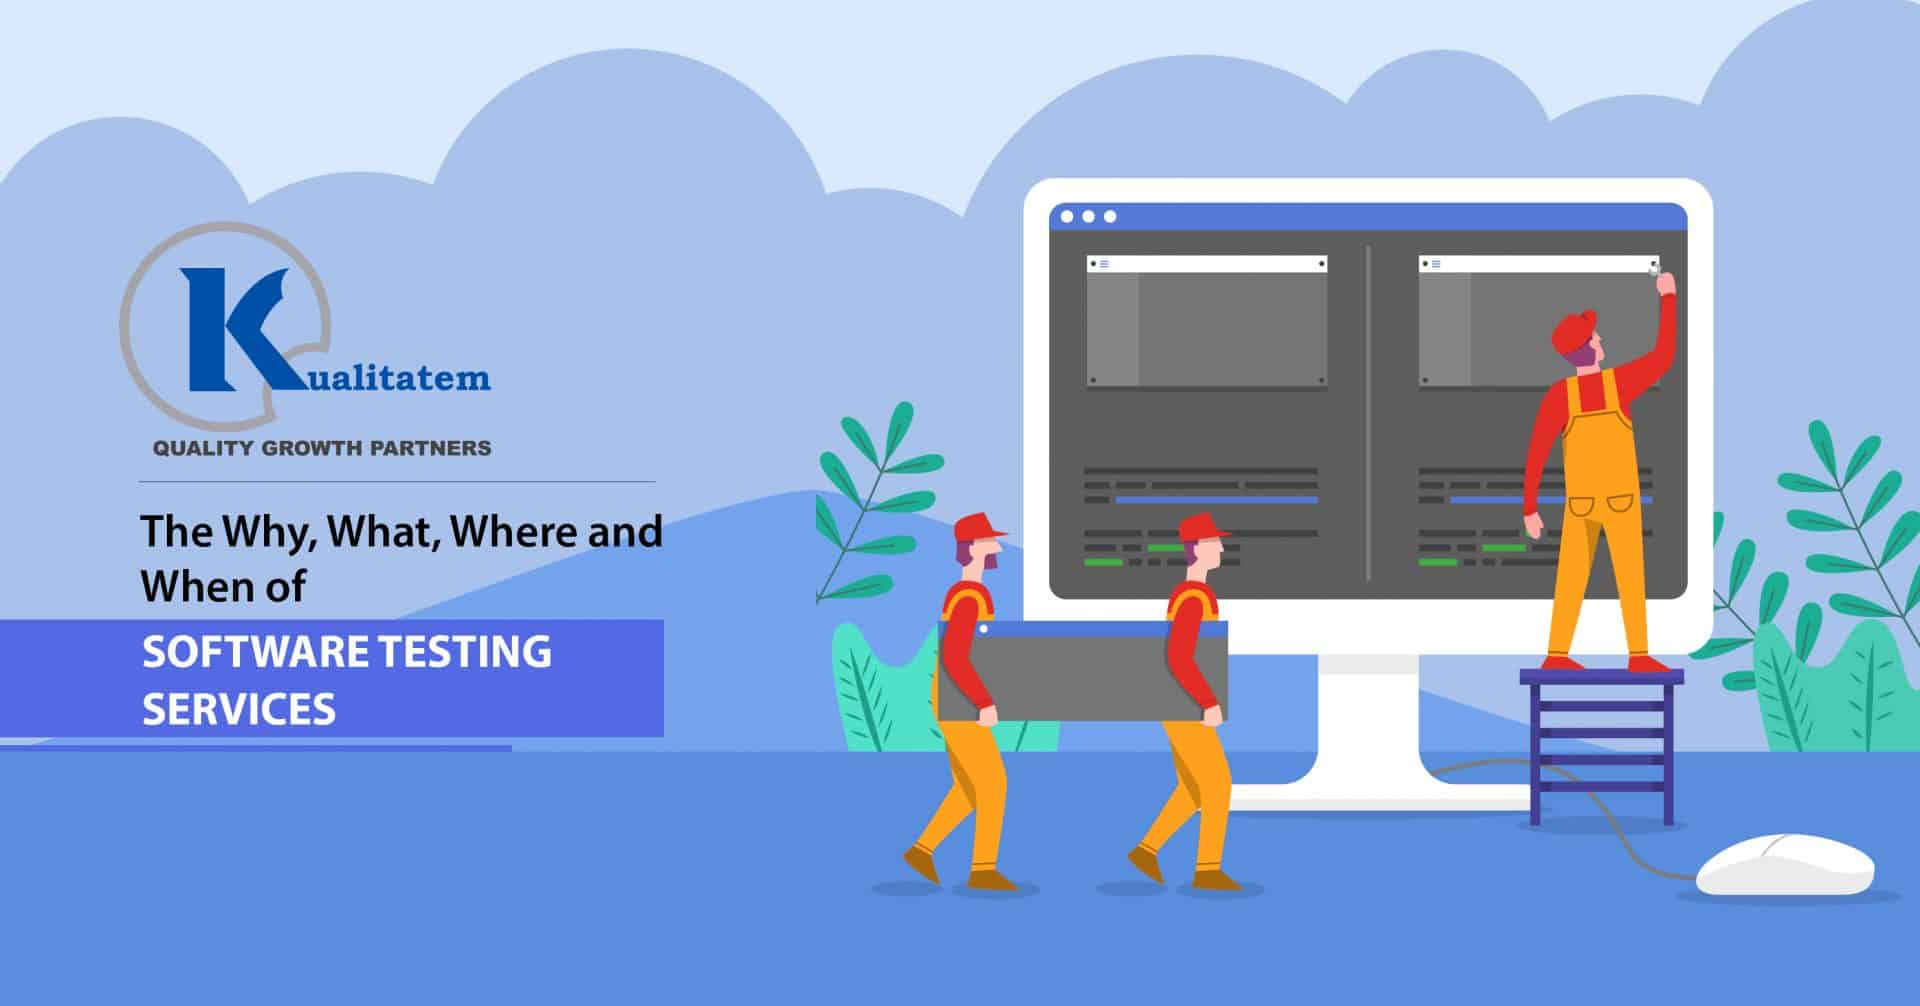 The Why, What, Where and When of Software Testing Services